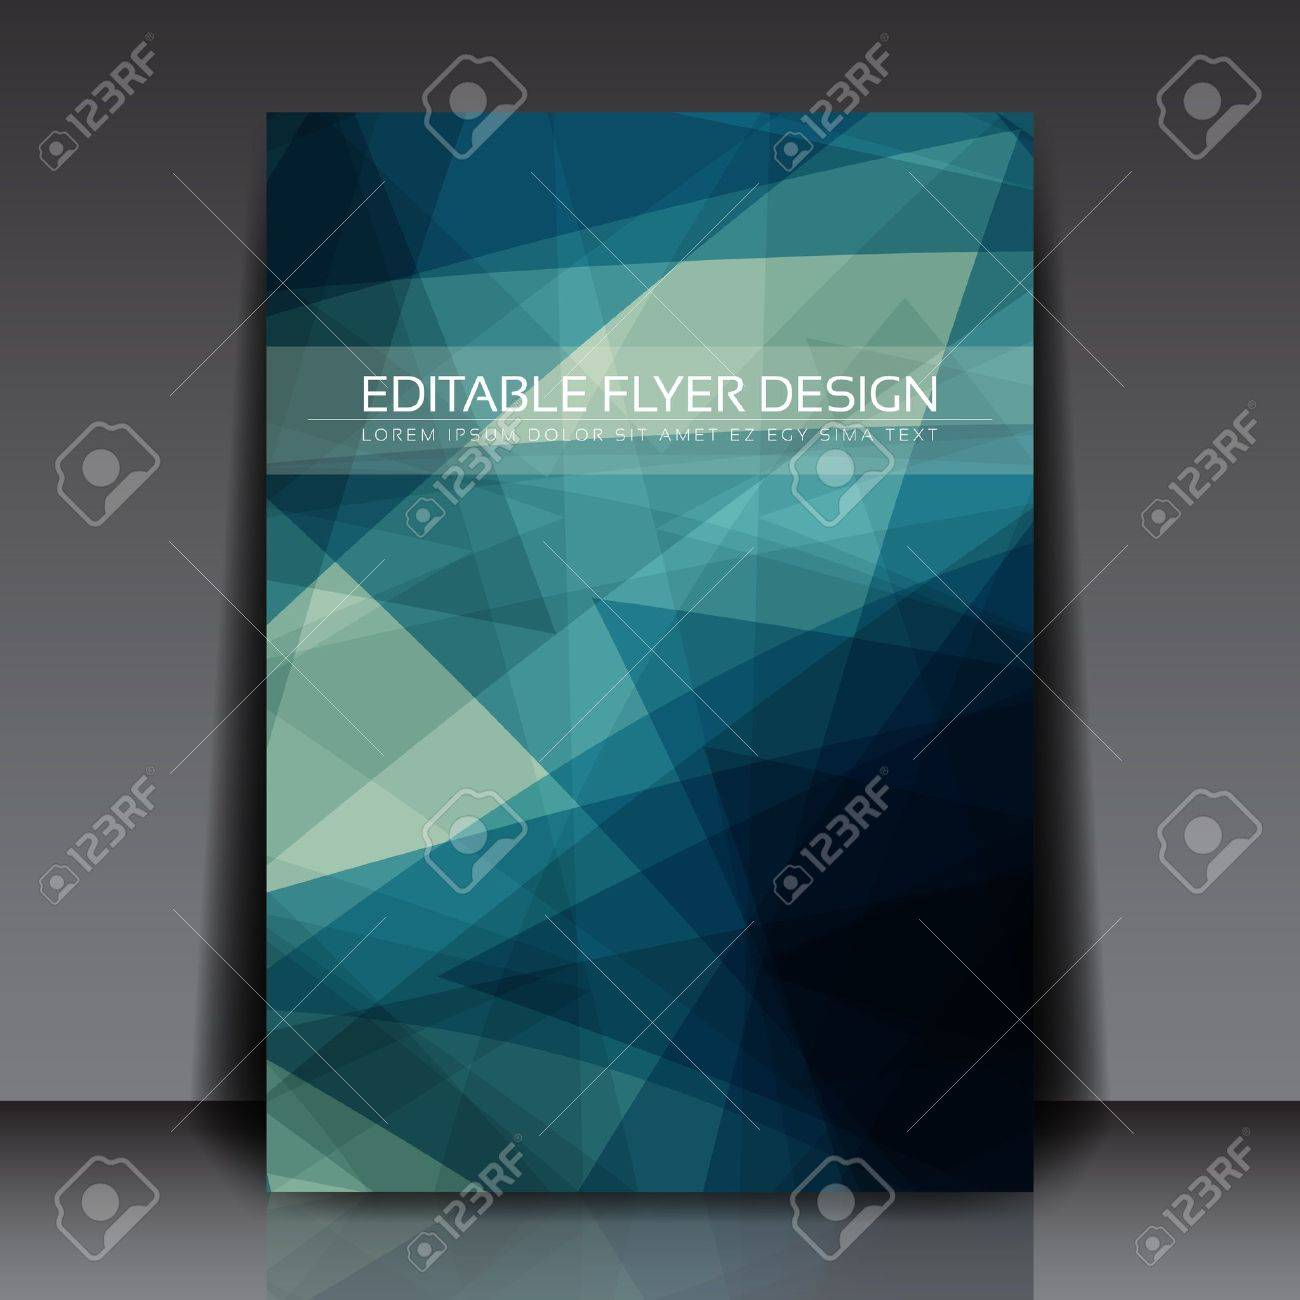 Abstract Blue Flyer Royalty Free Cliparts, Vectors, And Stock ...